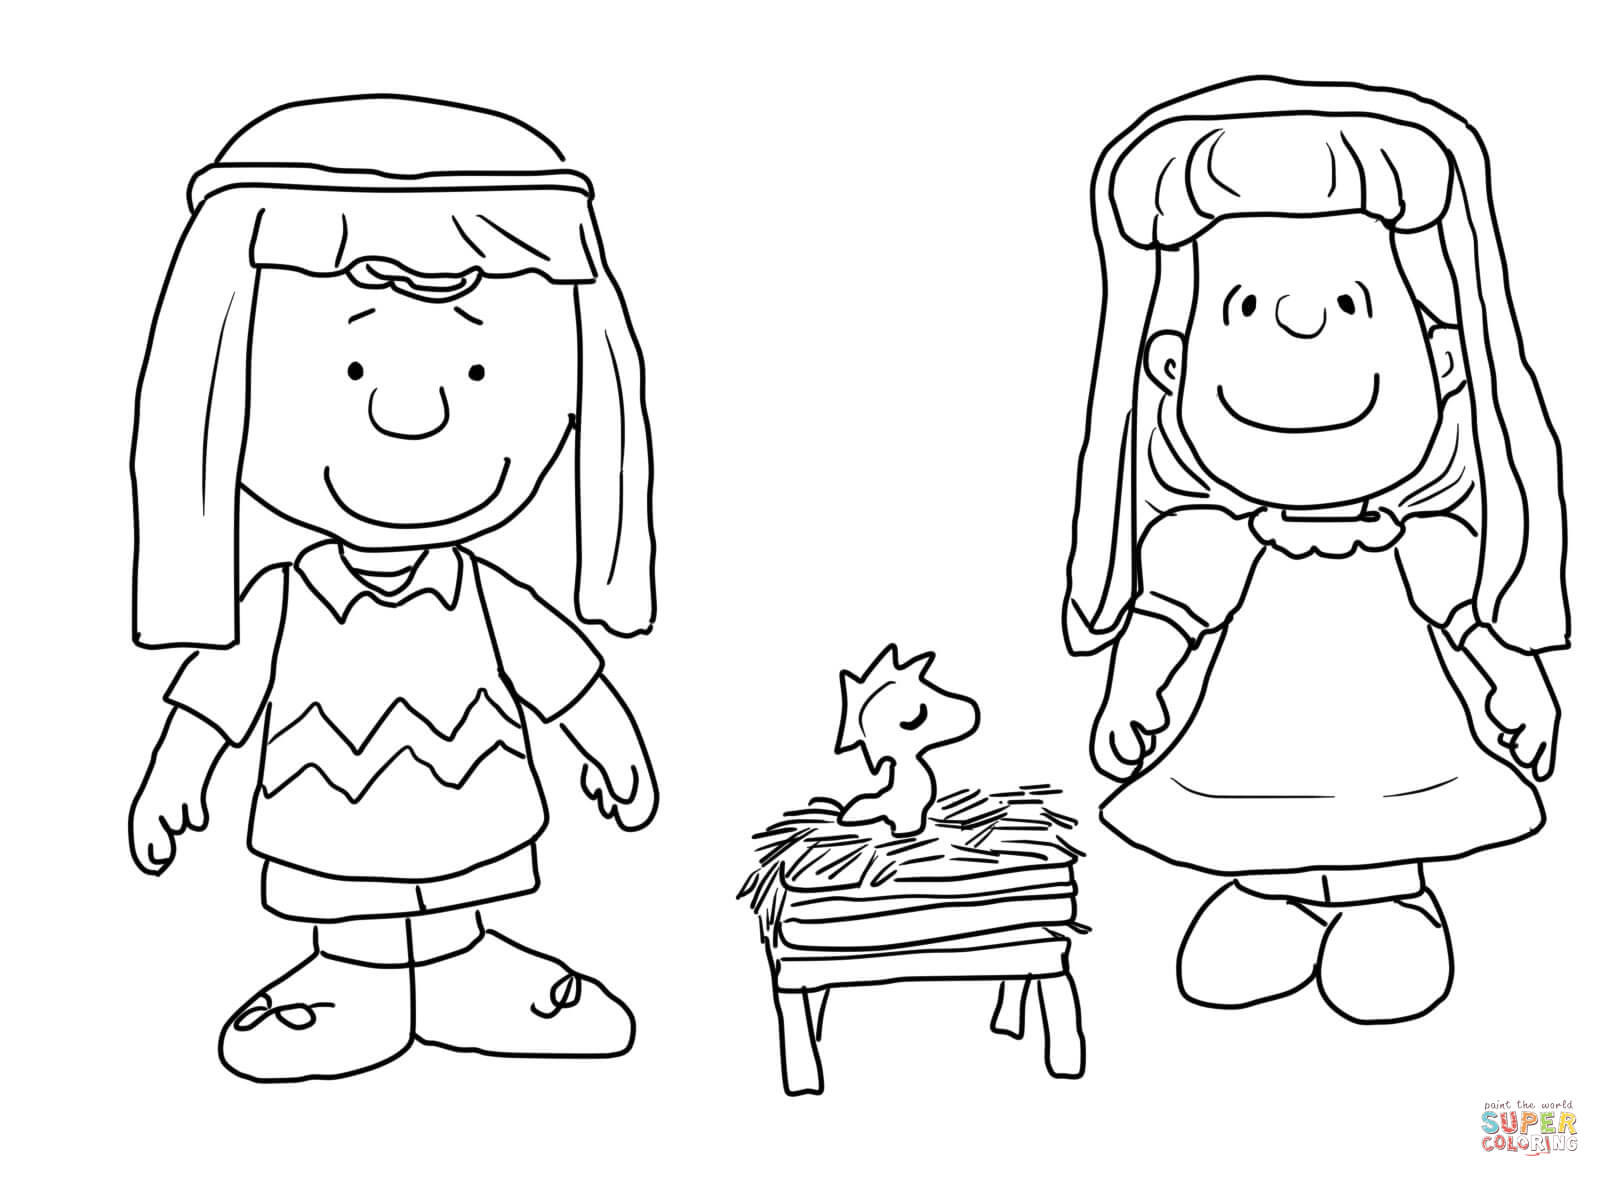 11 Pics of Charlie Brown Christmas Coloring Pages Printable ...